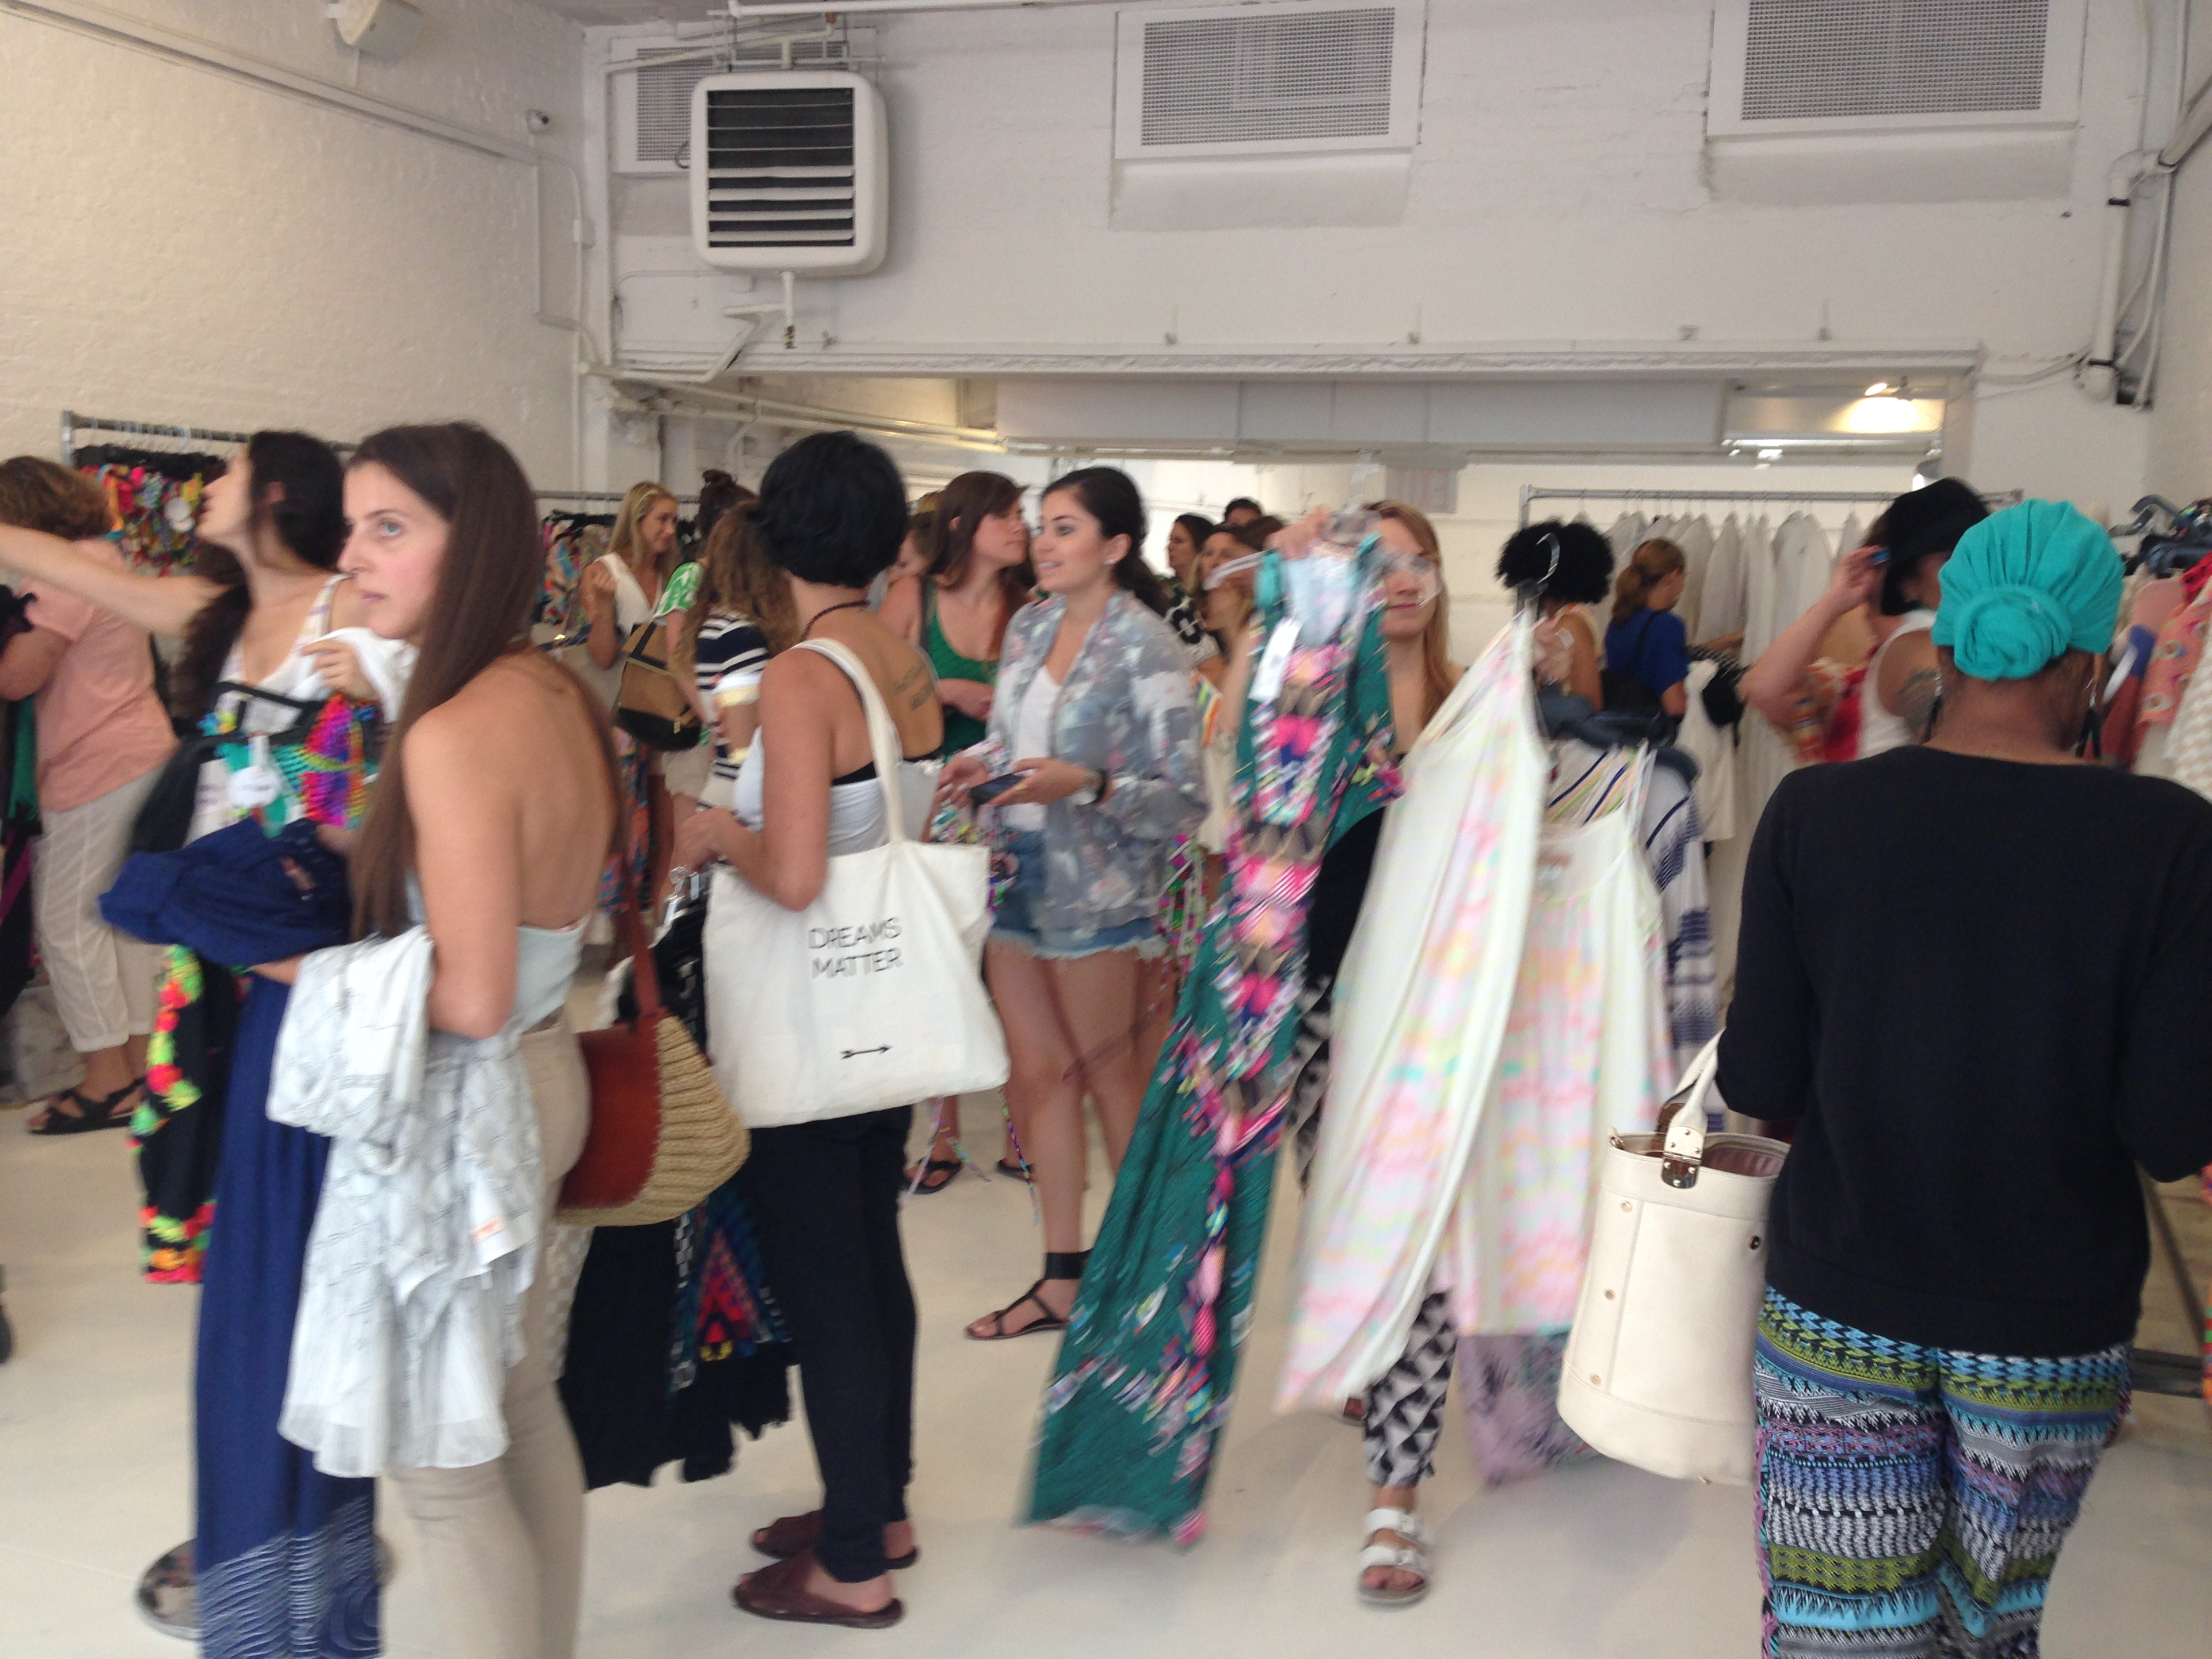 The Mara Hoffman Sample Sale Line Is at the Register, Not Outside ...